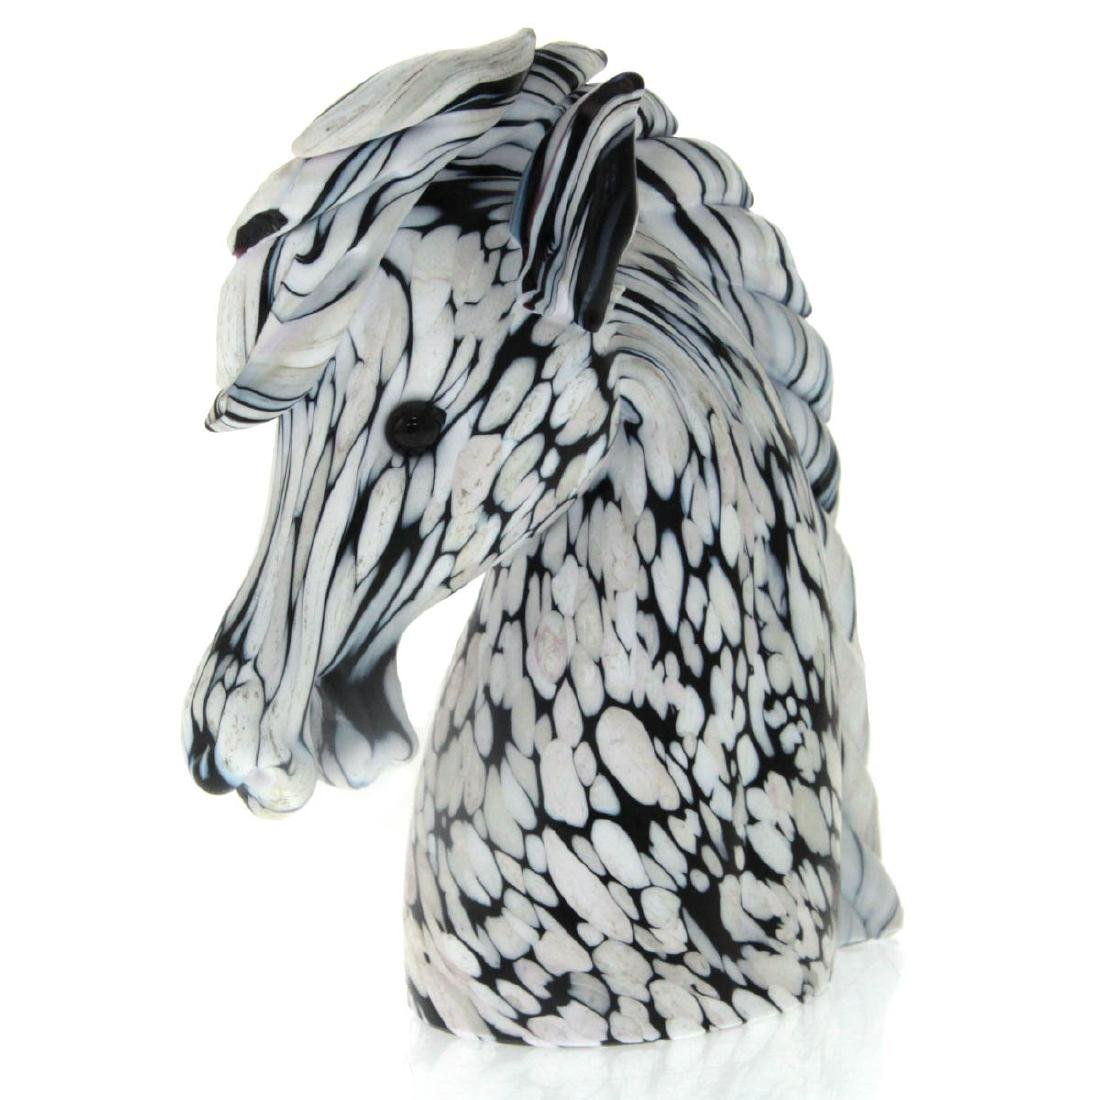 Archimede Seguso Murano Glass Horse Head Sculpture,